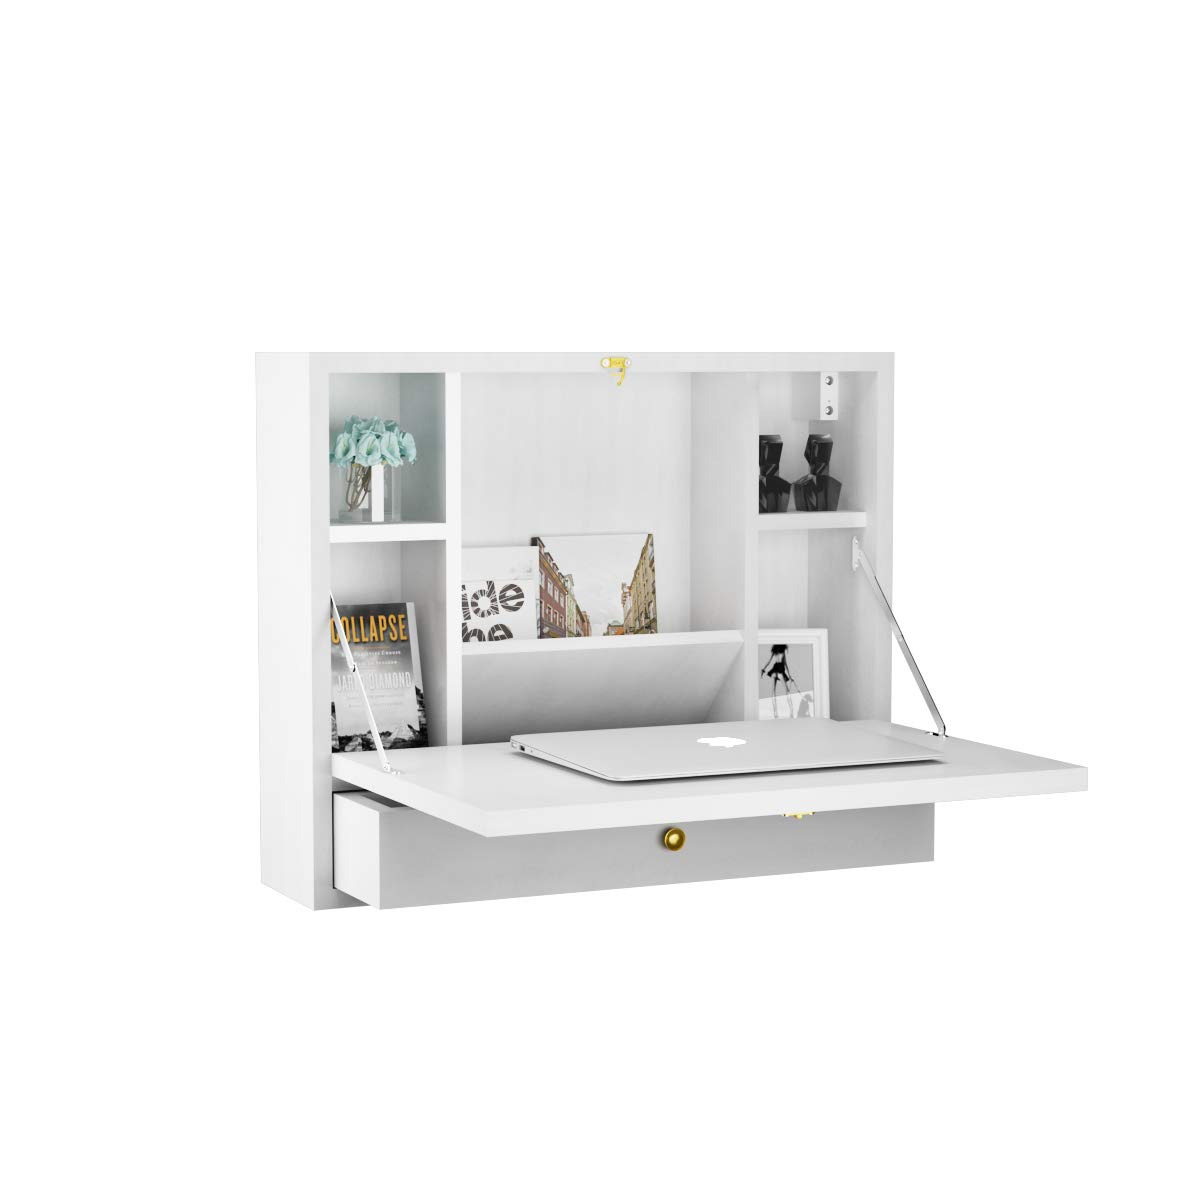 TANGKULA Wall Mounted Table Multi-Function Wall Mount Laptop Desk Writing Desk Home Office Computer Desk with Large Storage Area, Wall Desk (White) by Tangkula (Image #1)